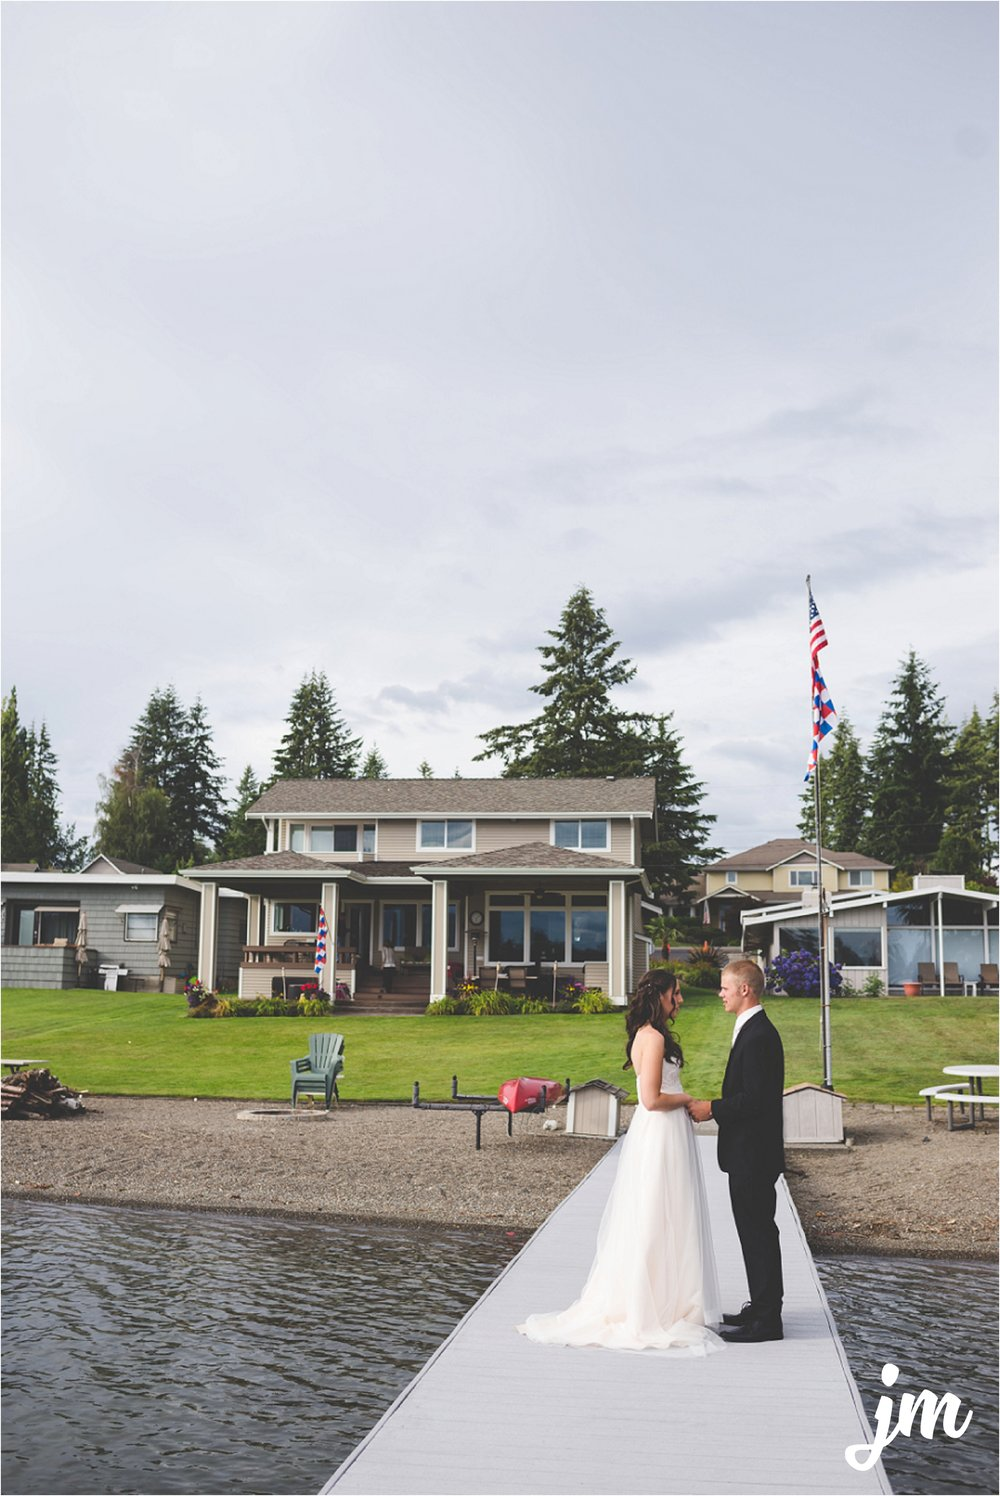 jannicka-mayte-intimate-backyard-lake-wedding-kent-wa-pacific-northwest-wedding-photographer_0025.jpg